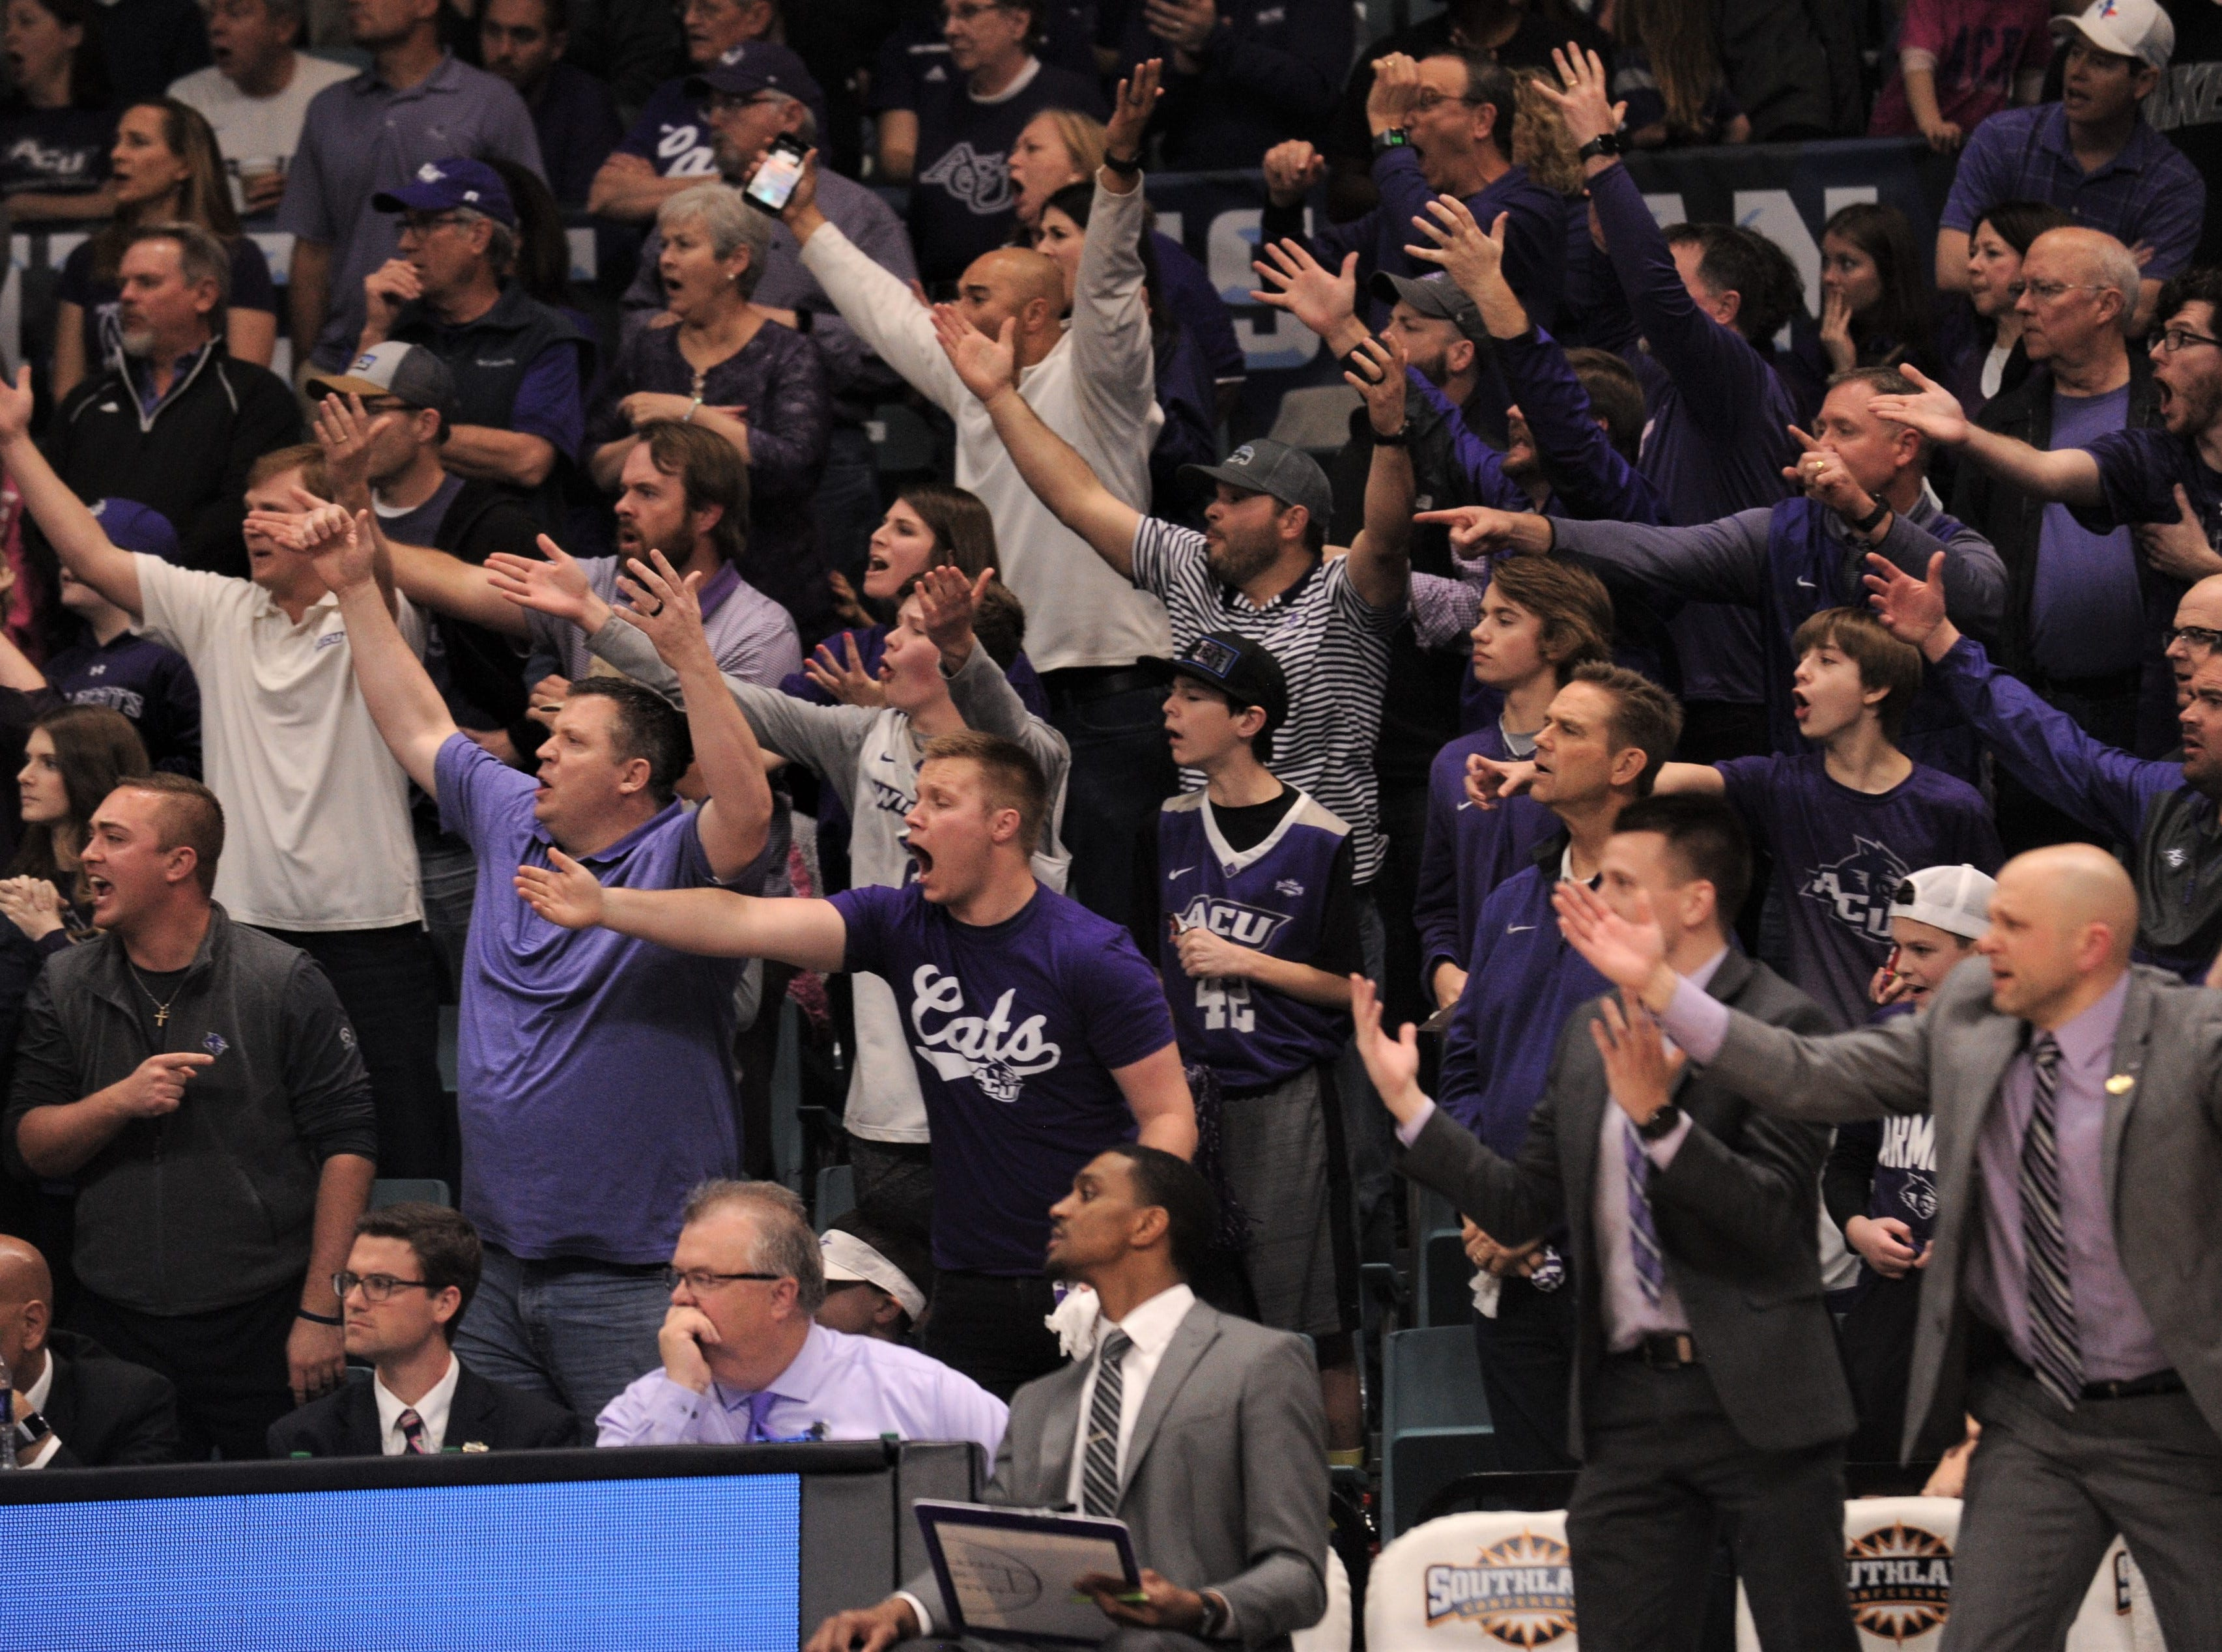 ACU fans react to a call in the second half of the Wildcats' game against New Orleans. ACU beat the Privateers 77-60 to win the Southland Conference Tournament title Saturday, March 16, 2019, at the Merrell Center in Katy.